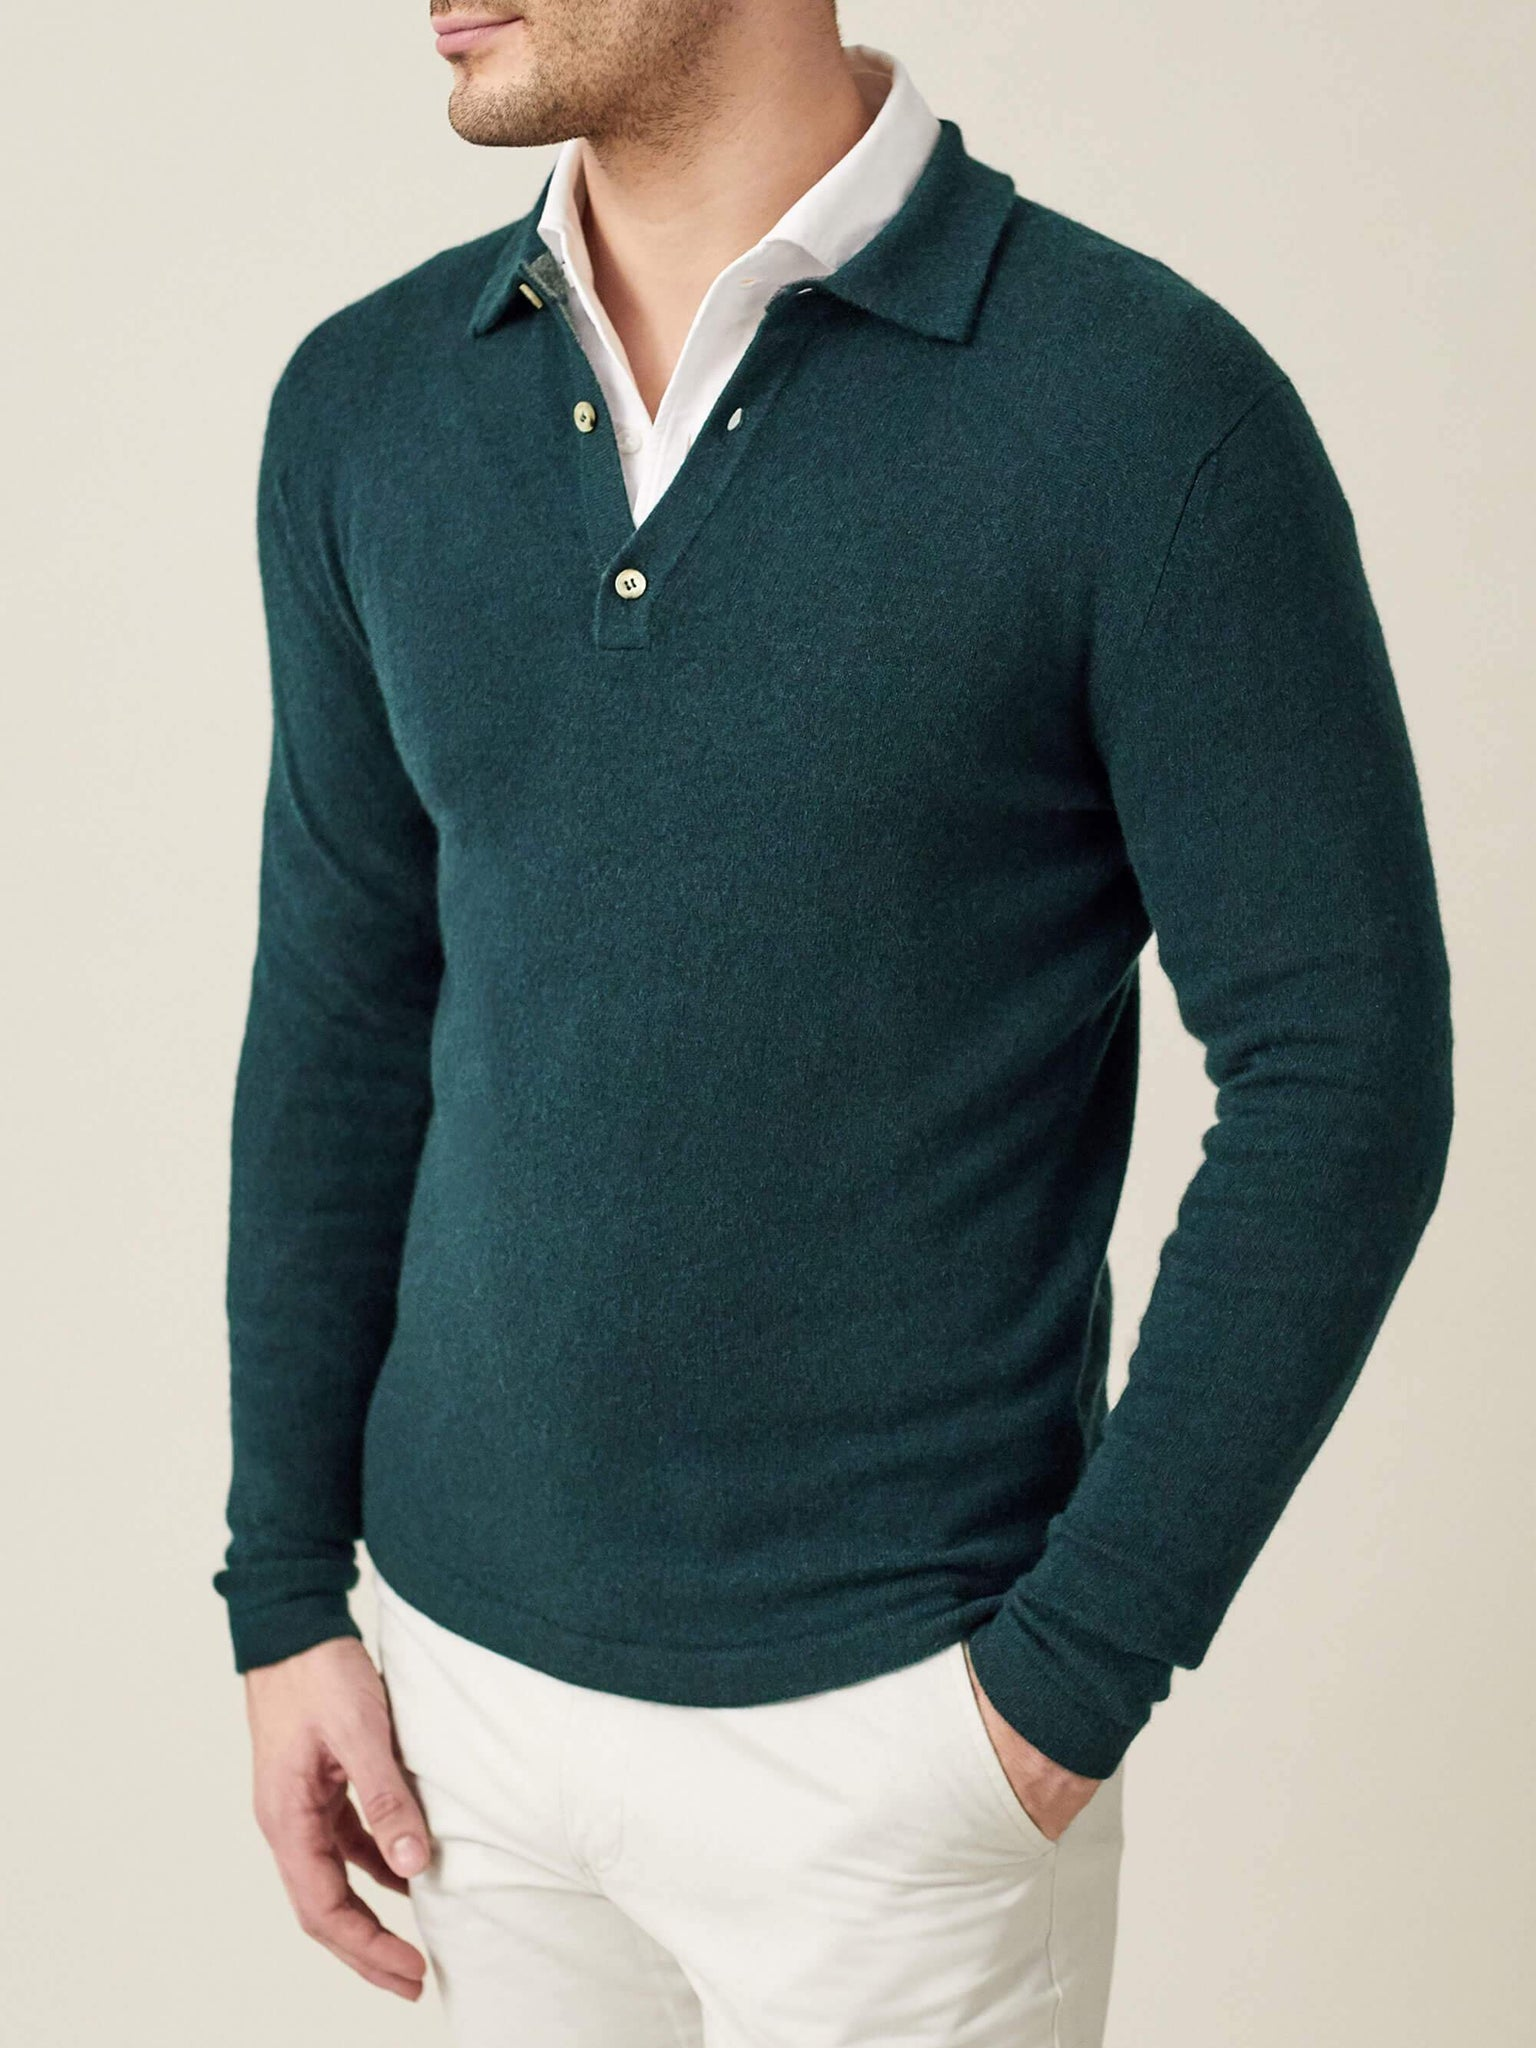 32c2e0438 Forest Green Pure Cashmere Polo Sweater - Made in Italy – Luca Faloni